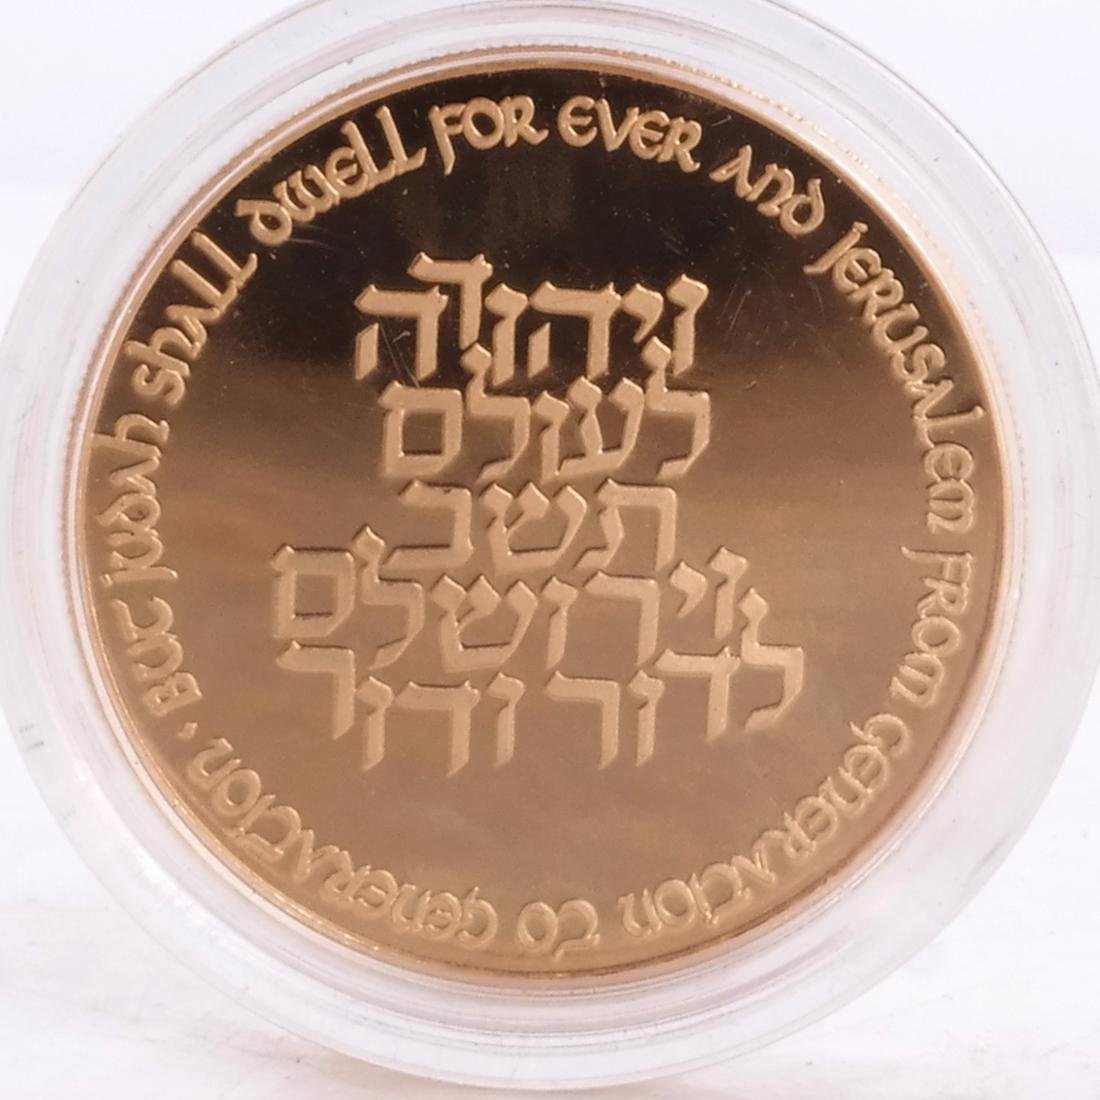 1996 Israel Gold 10 Proof